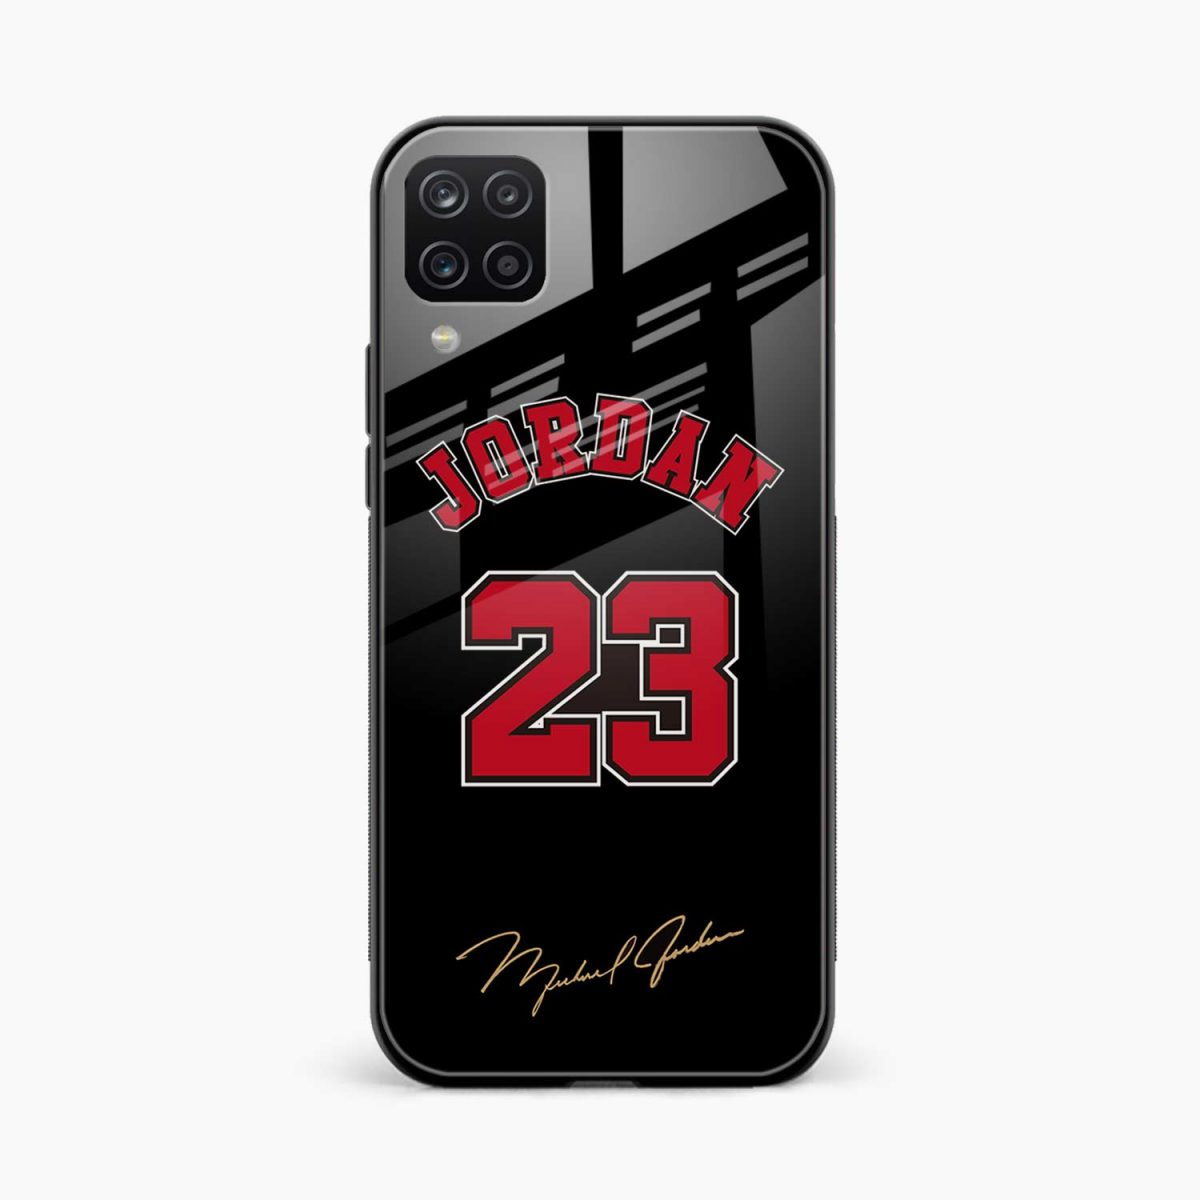 jordan front view samsung galaxy a12 back cover